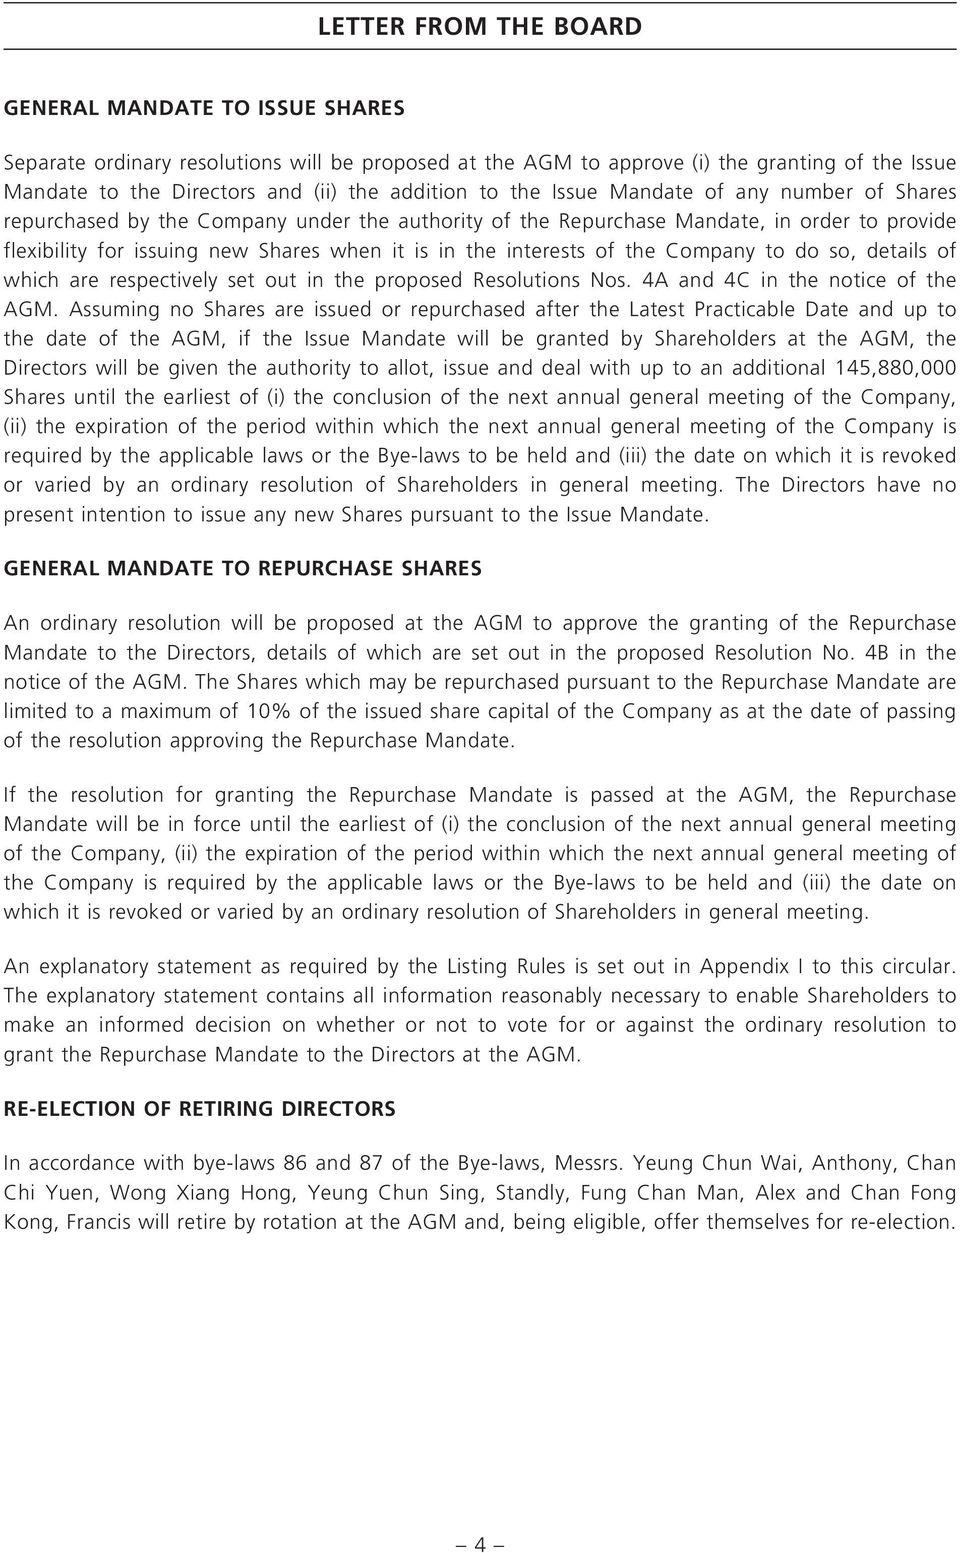 interests of the Company to do so, details of which are respectively set out in the proposed Resolutions Nos. 4A and 4C in the notice of the AGM.